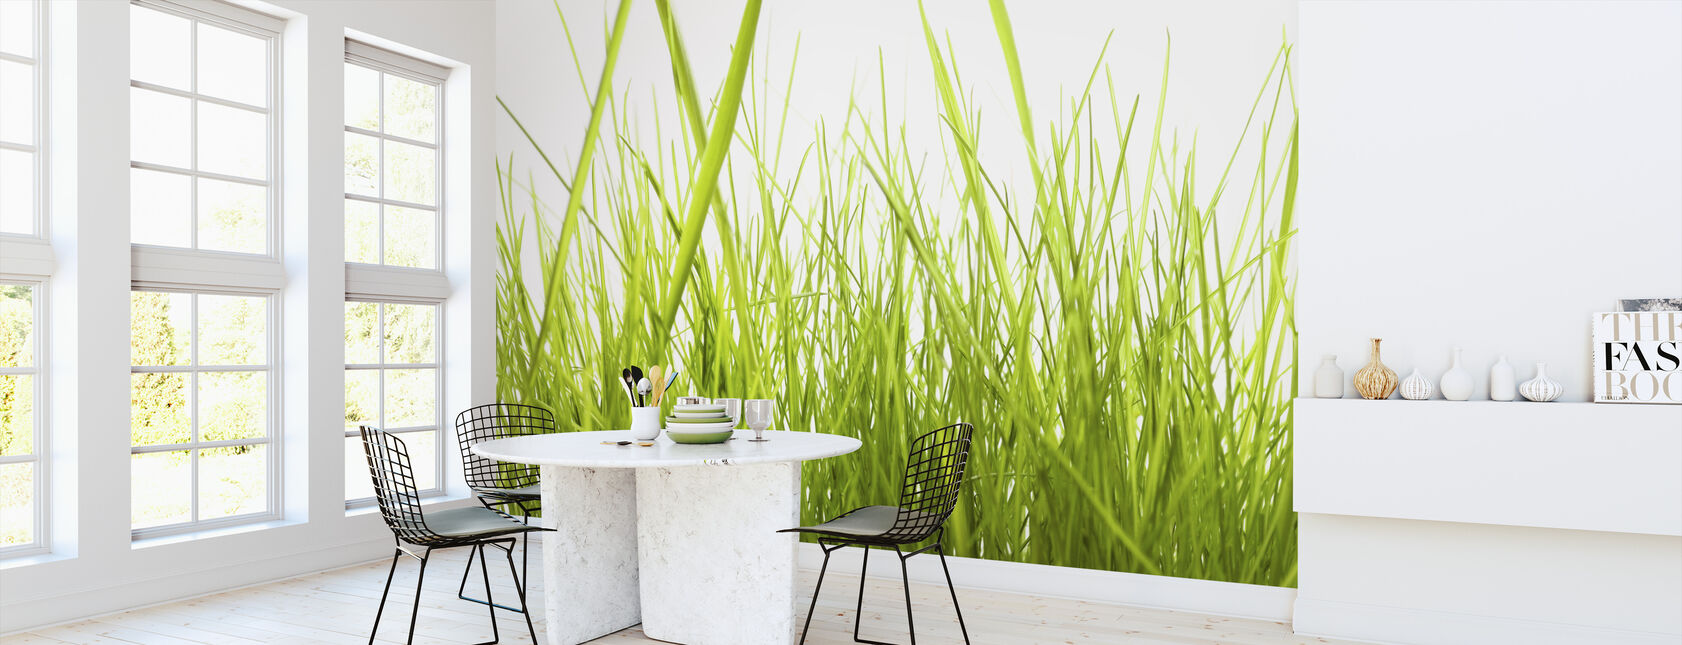 High Grass - Wallpaper - Kitchen